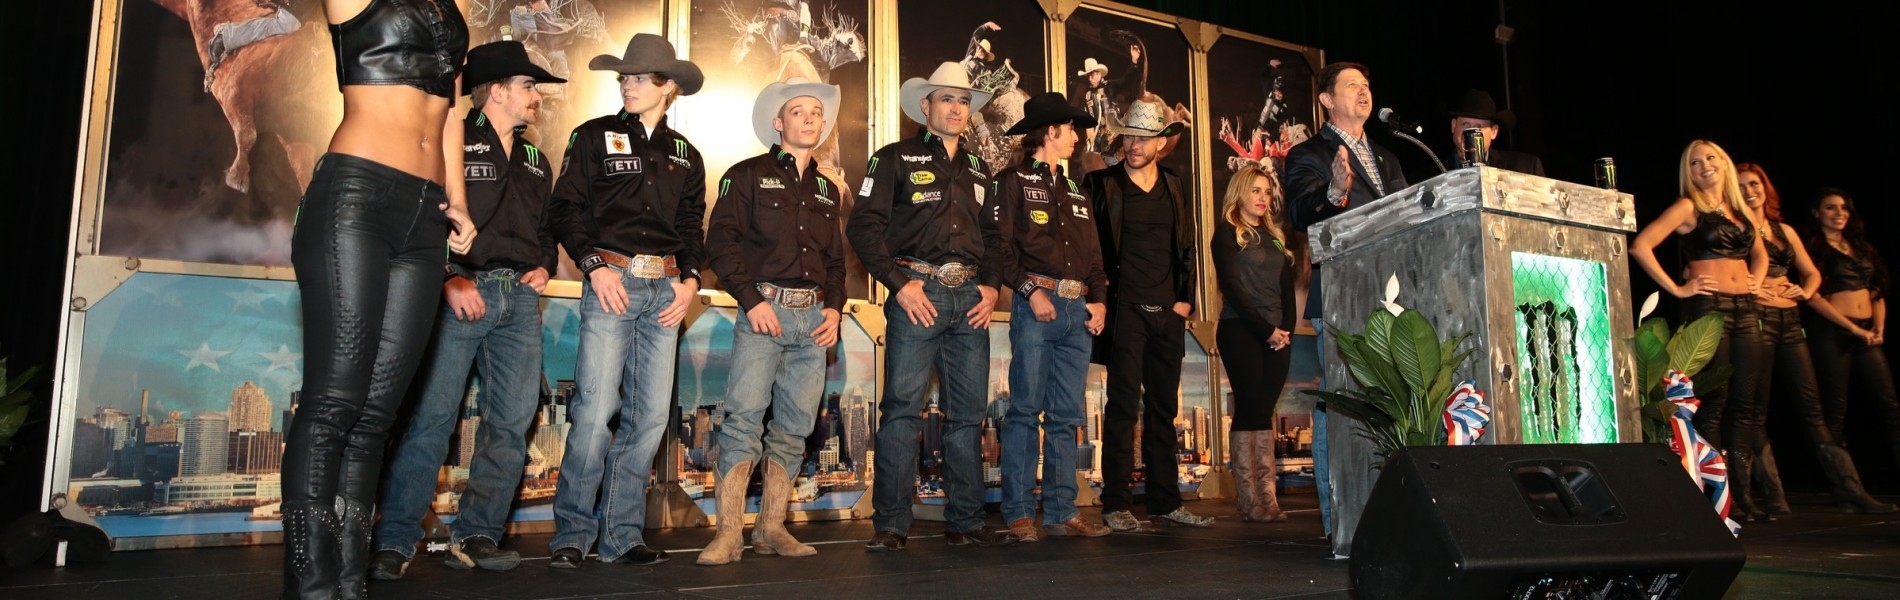 Derek Kolbaba, Gage Gay, Guilherme Marchi, JB Mauney, Chase Outlaw Mitch Covington at the Monster Garden Party during the New York City Built Ford Tough series PBR